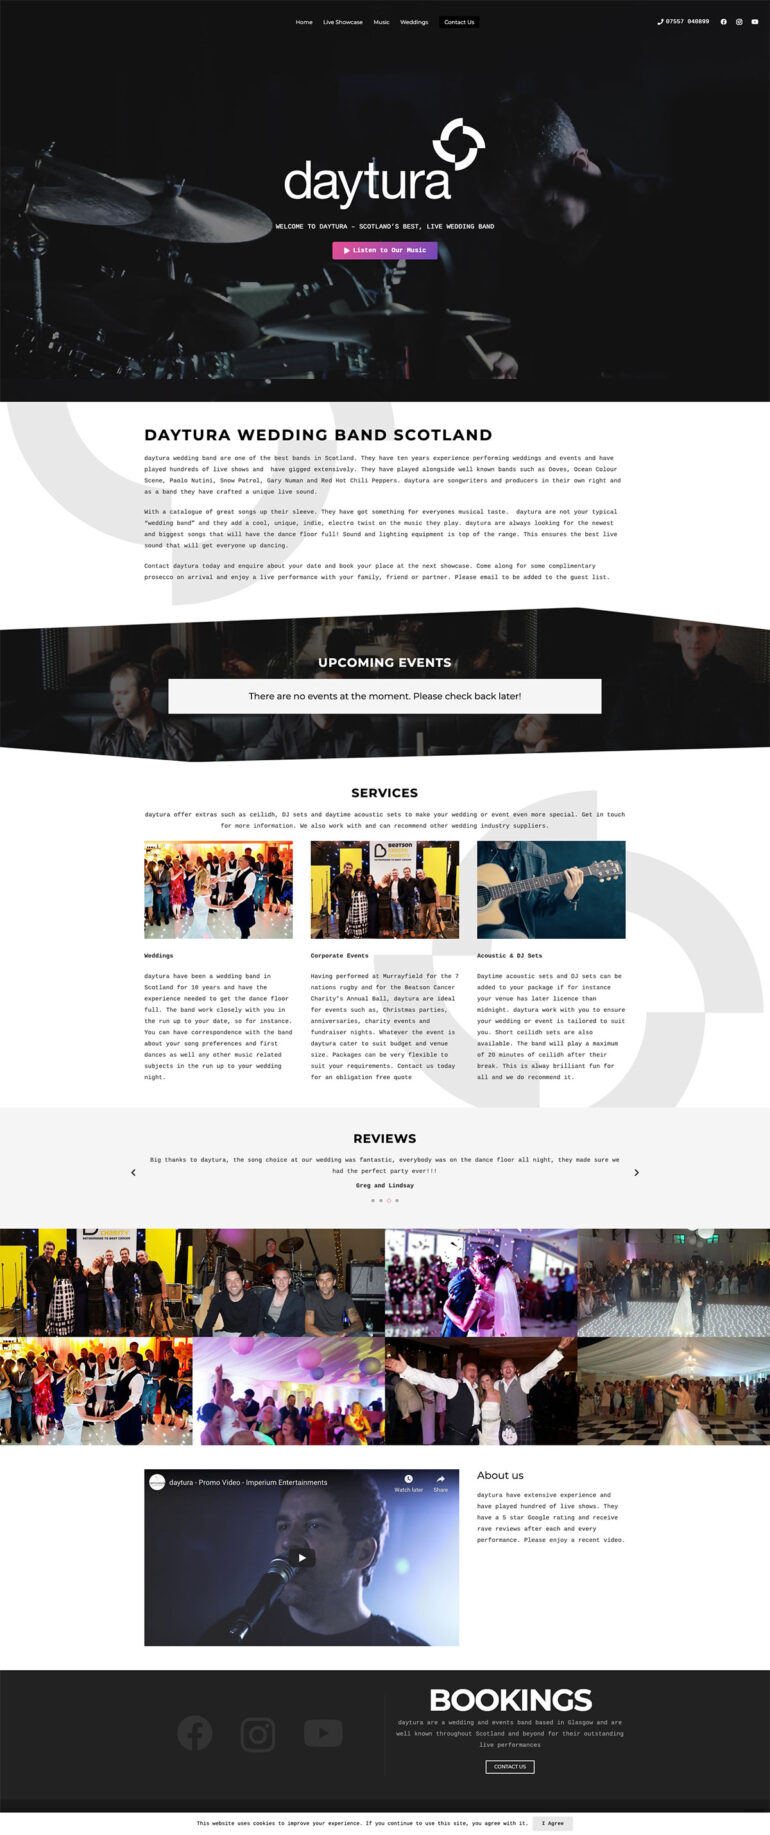 daytura website design